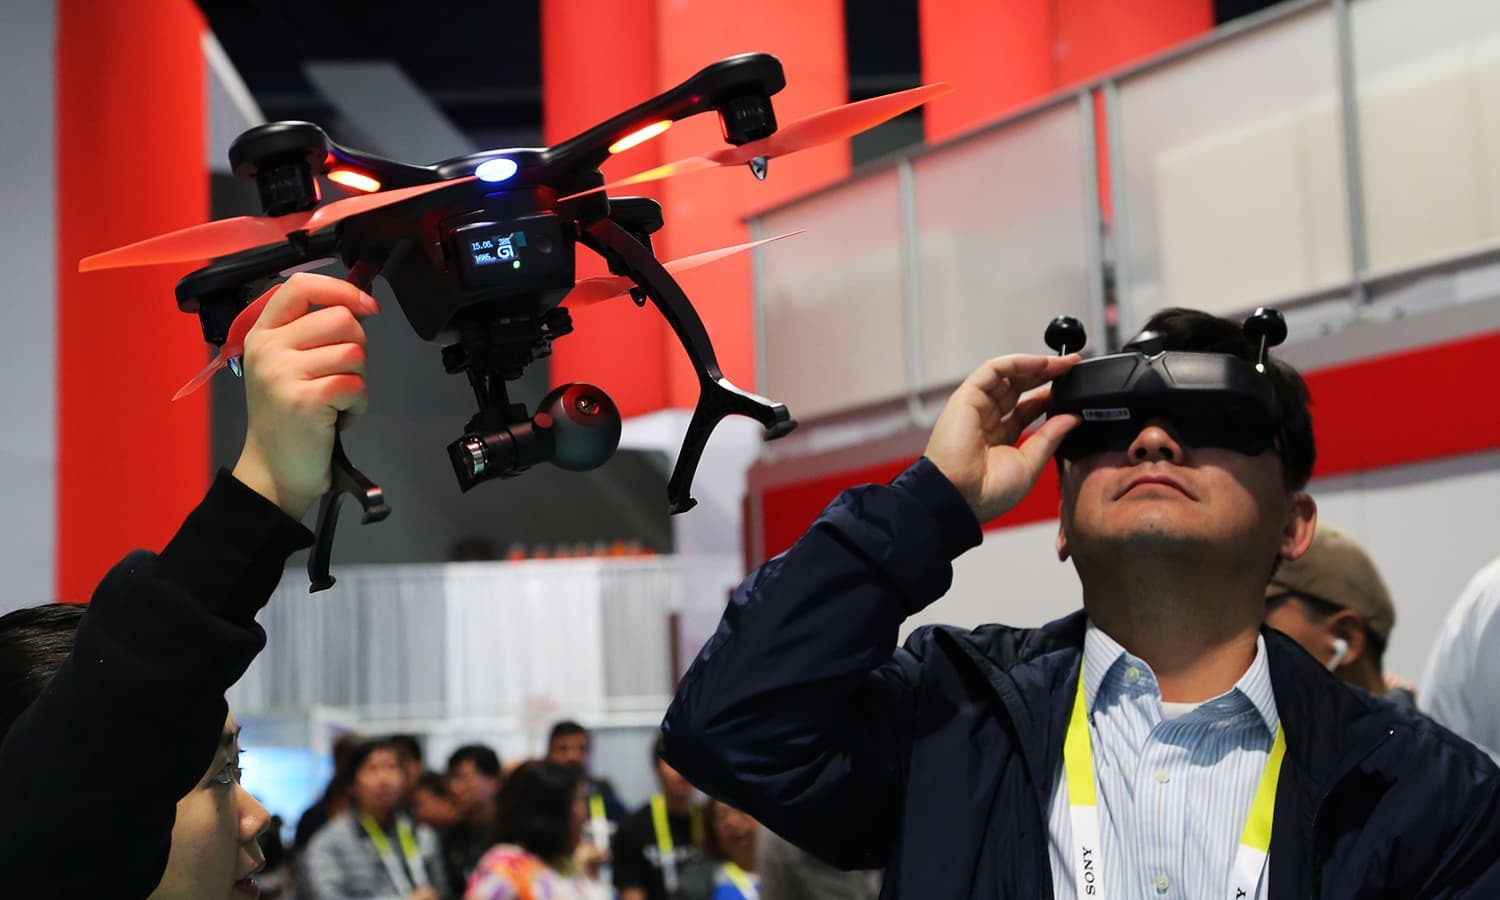 Neuro-hacking, Netflix and VR: 8 takeaways from the Consumer Electronics Show 2016